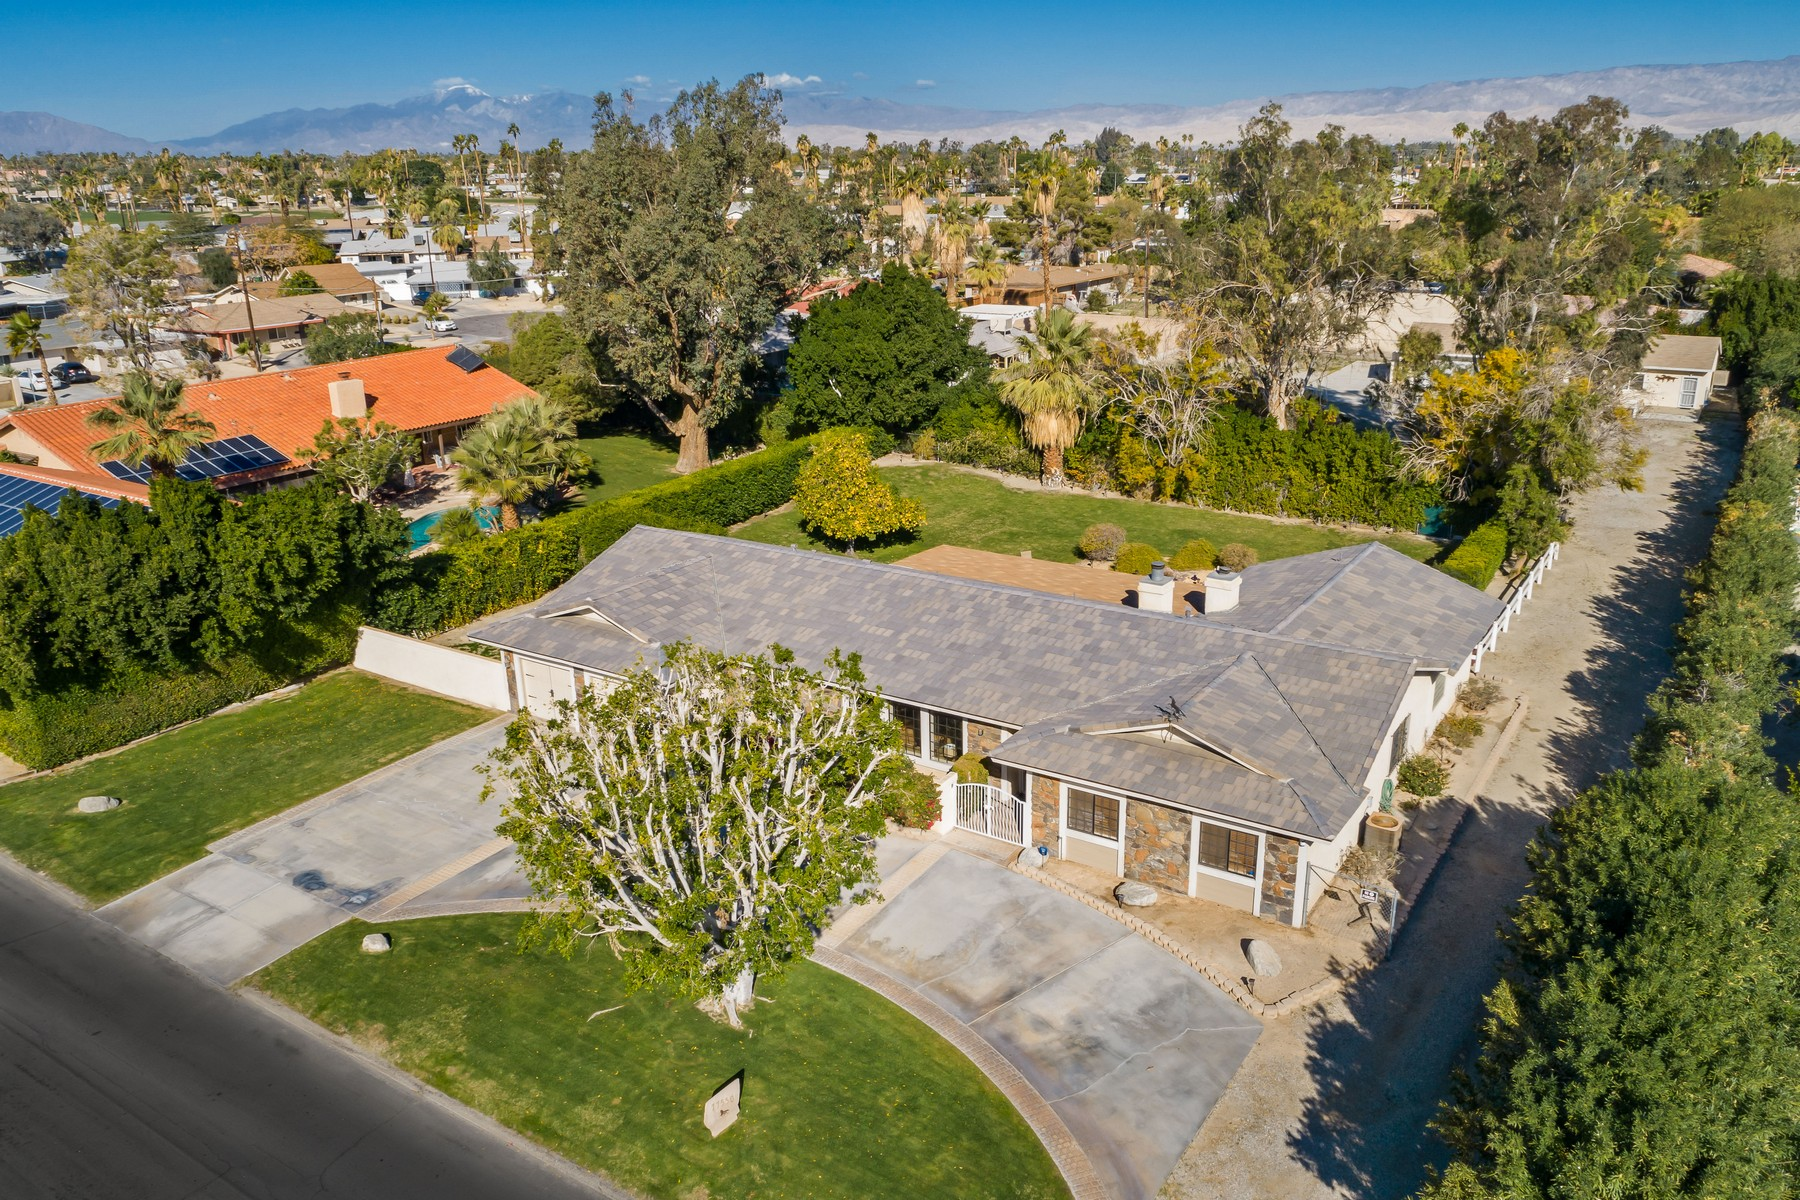 Single Family Homes for Sale at 77550 Mountain View Palm Desert, California 92211 United States